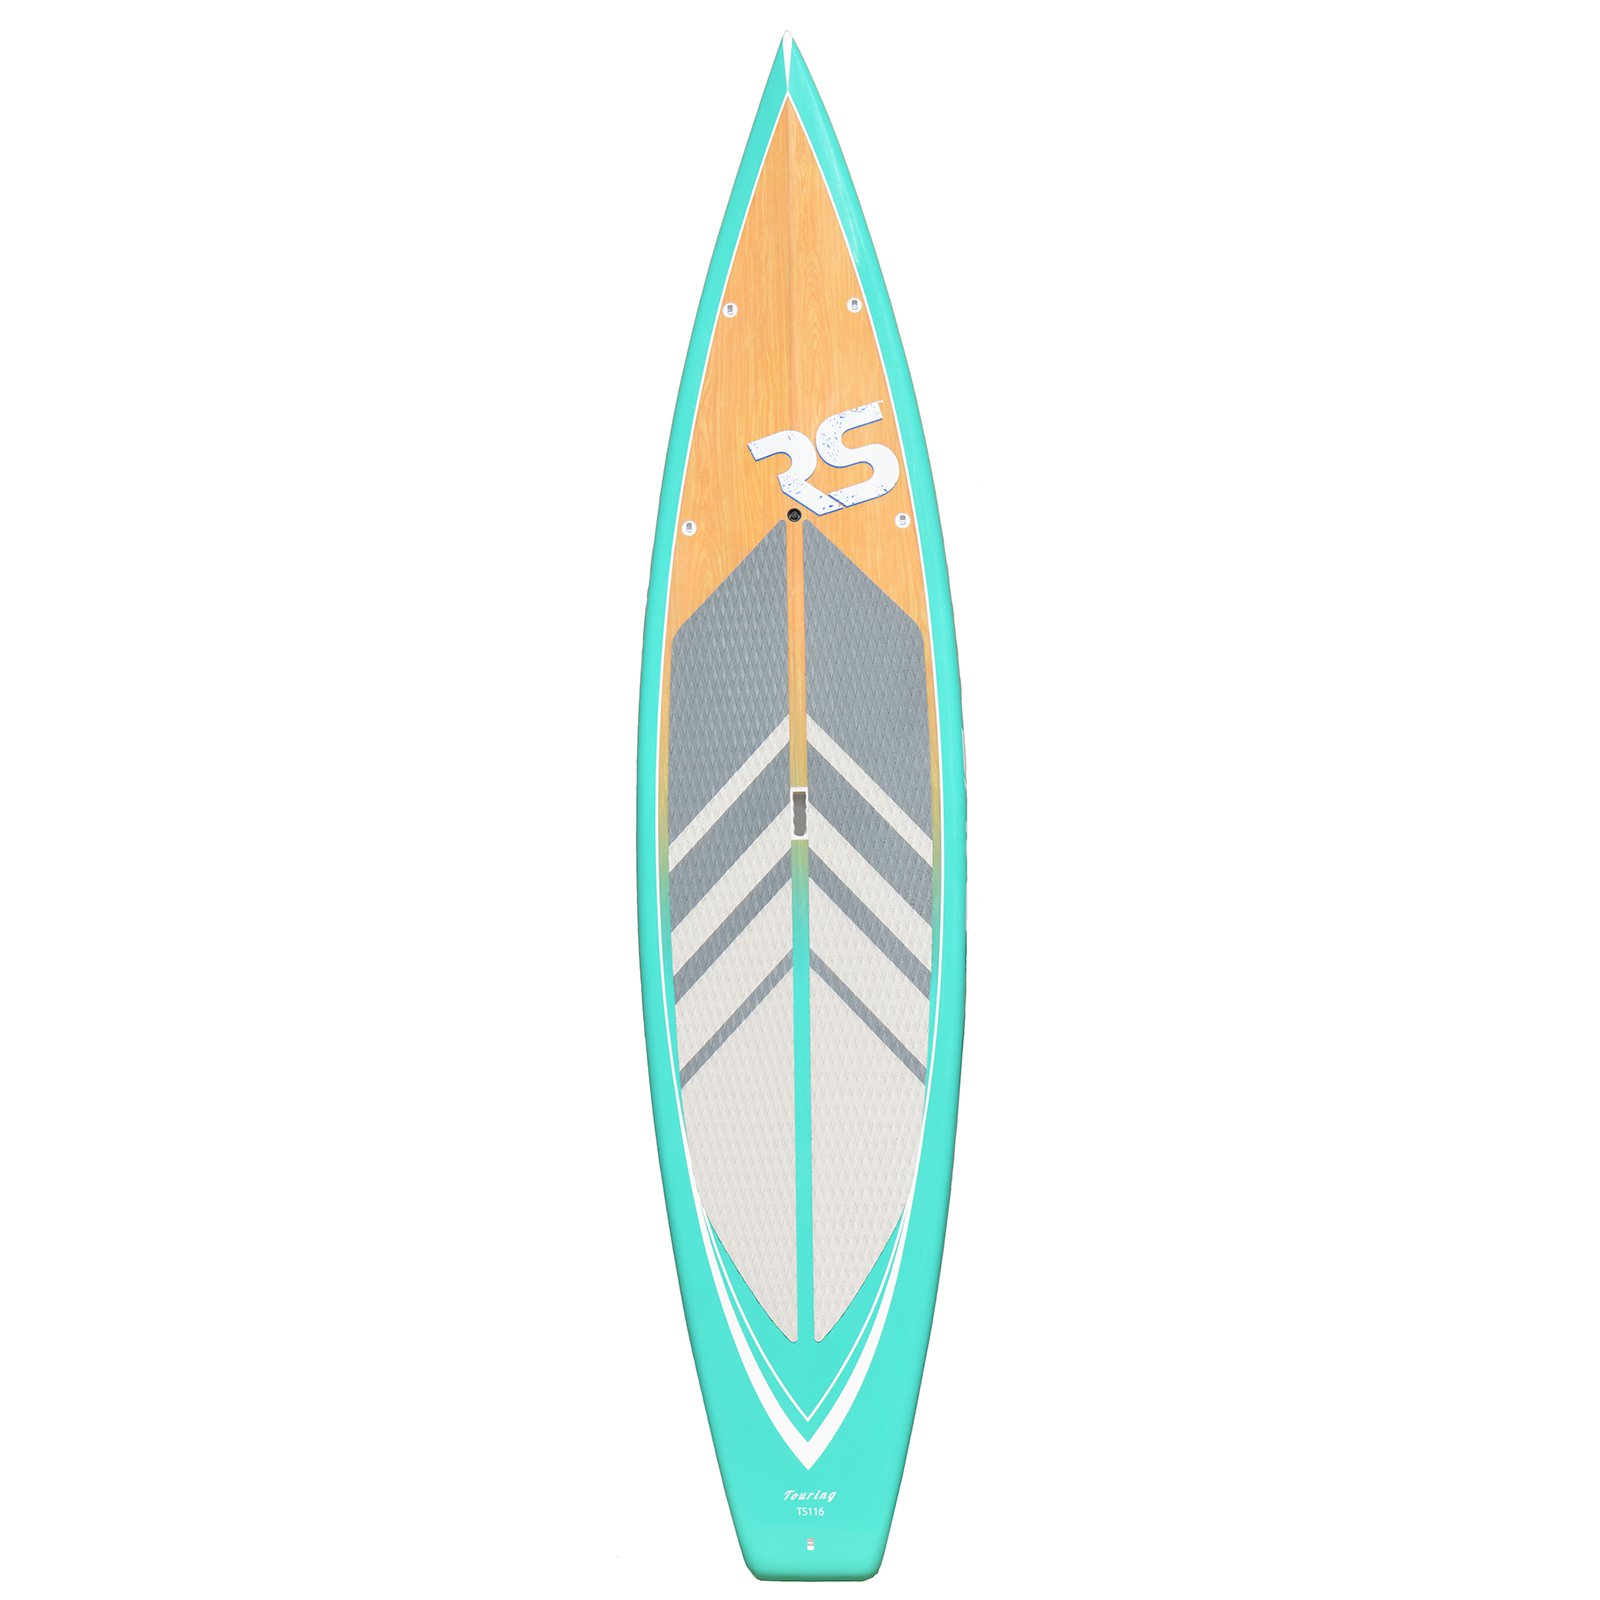 Rave Sports Touring SUP TS126 Stand Up Paddle Board by Overstock